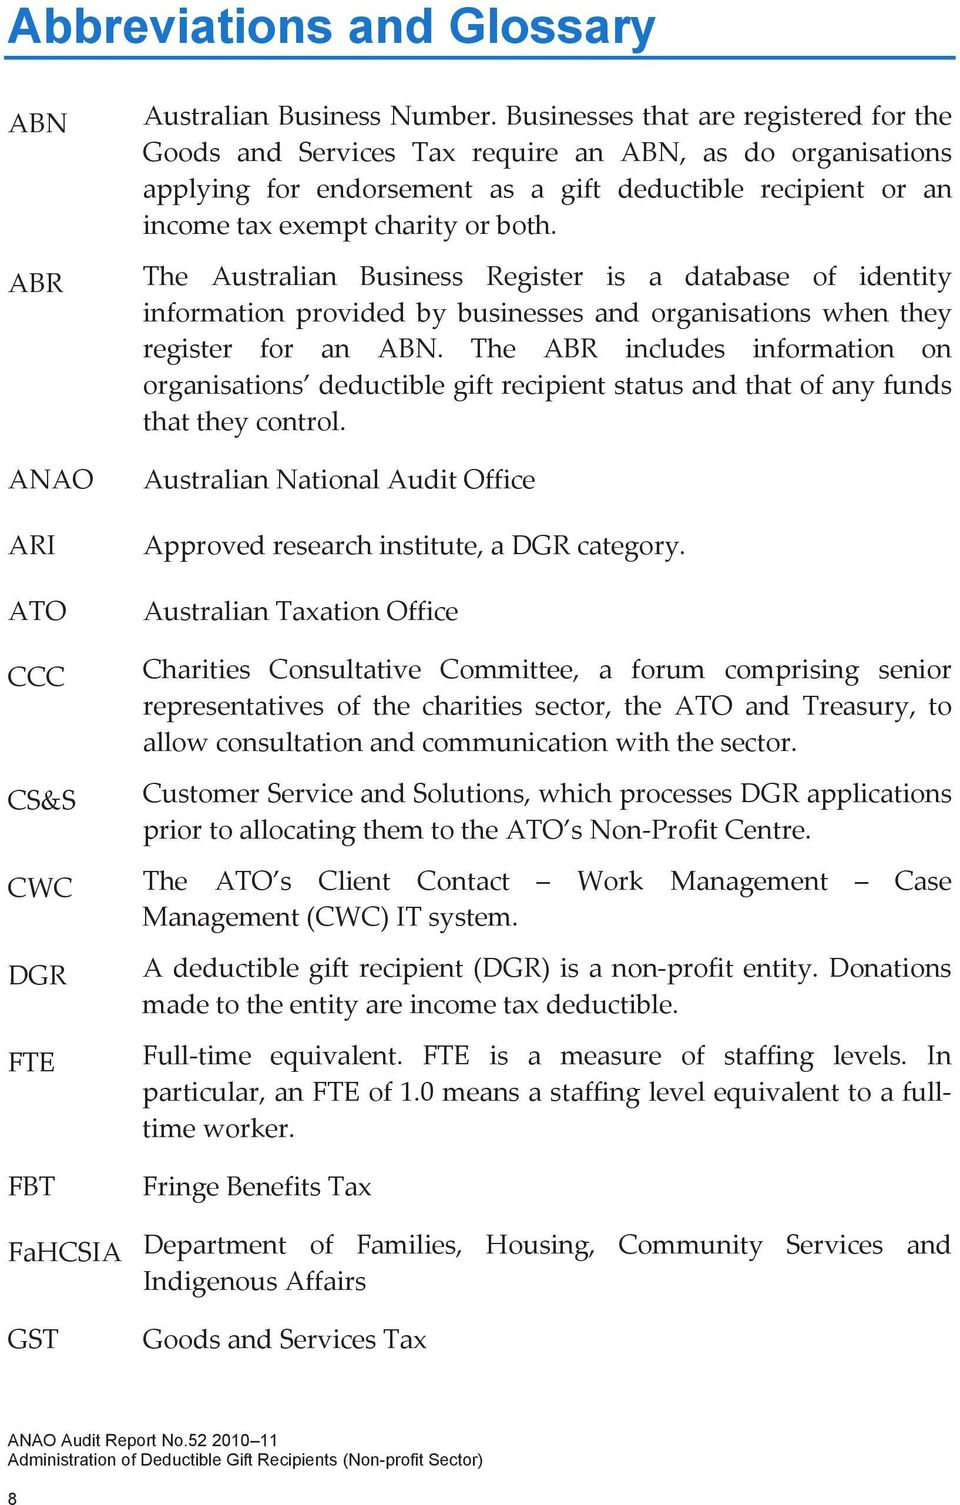 The Australian Business Register is a database of identity information provided by businesses and organisations when they register for an ABN.